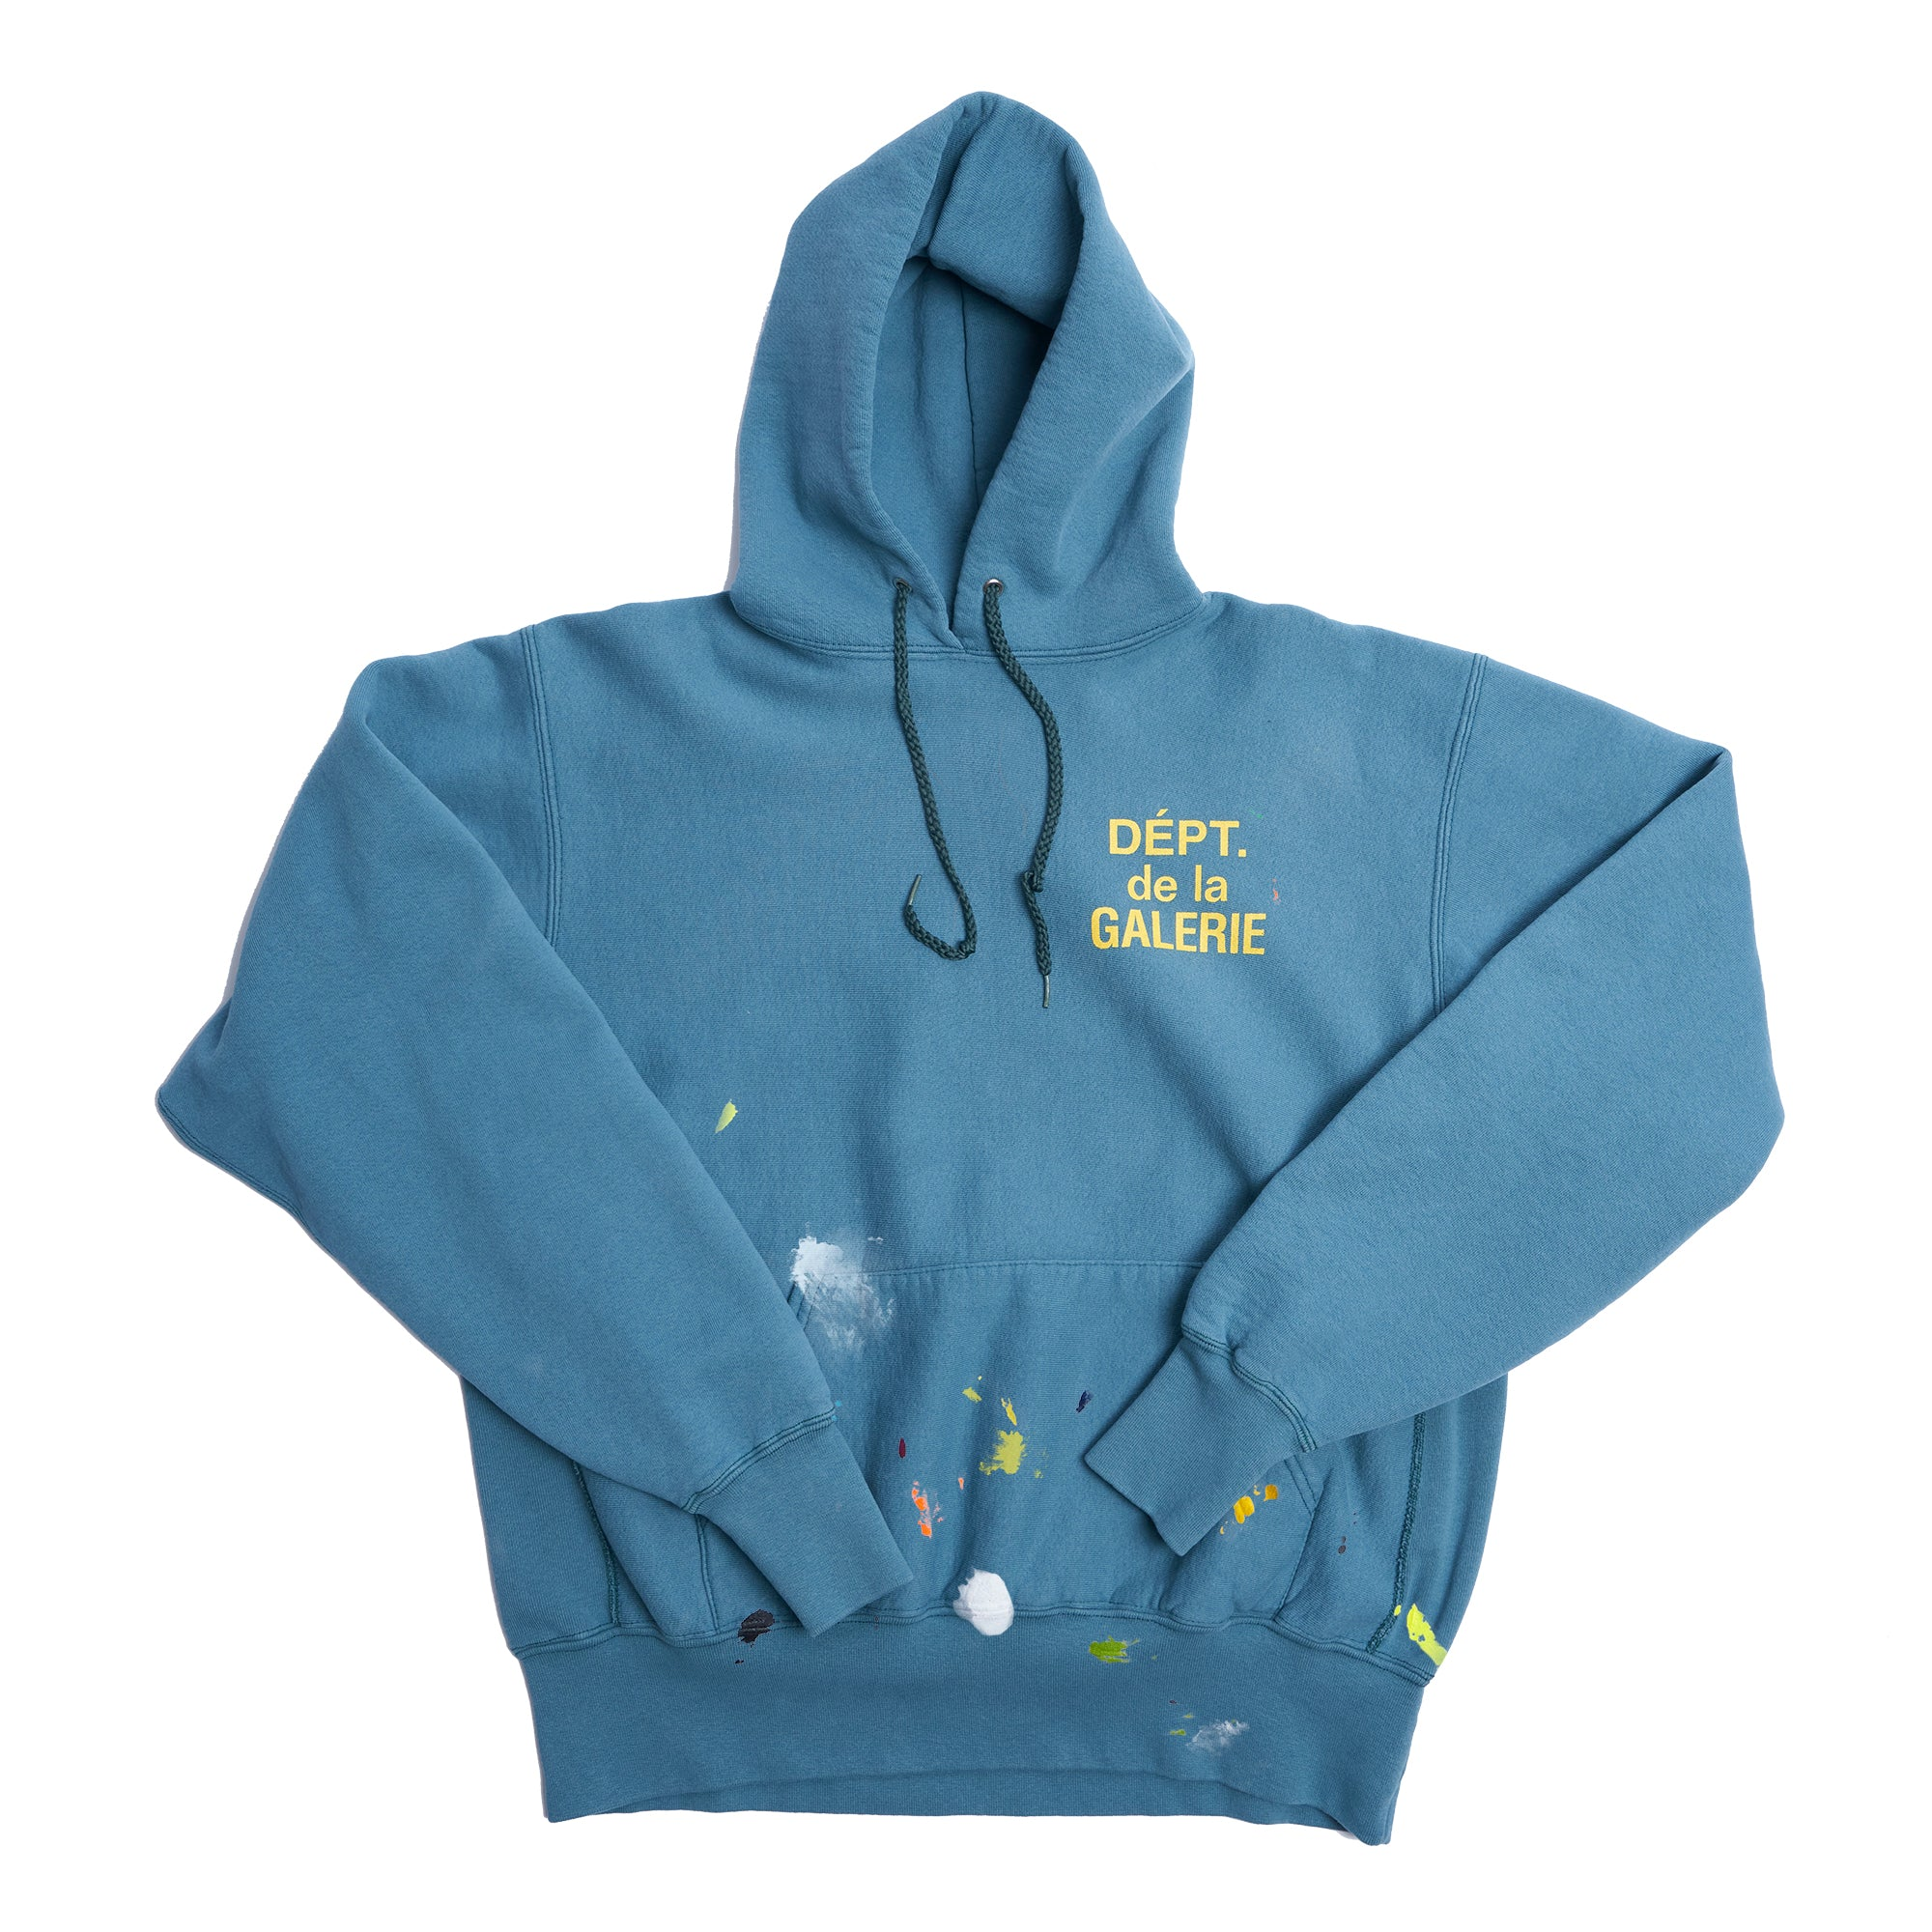 Gallery Dept. French Logo Hoodie - Limited Edition